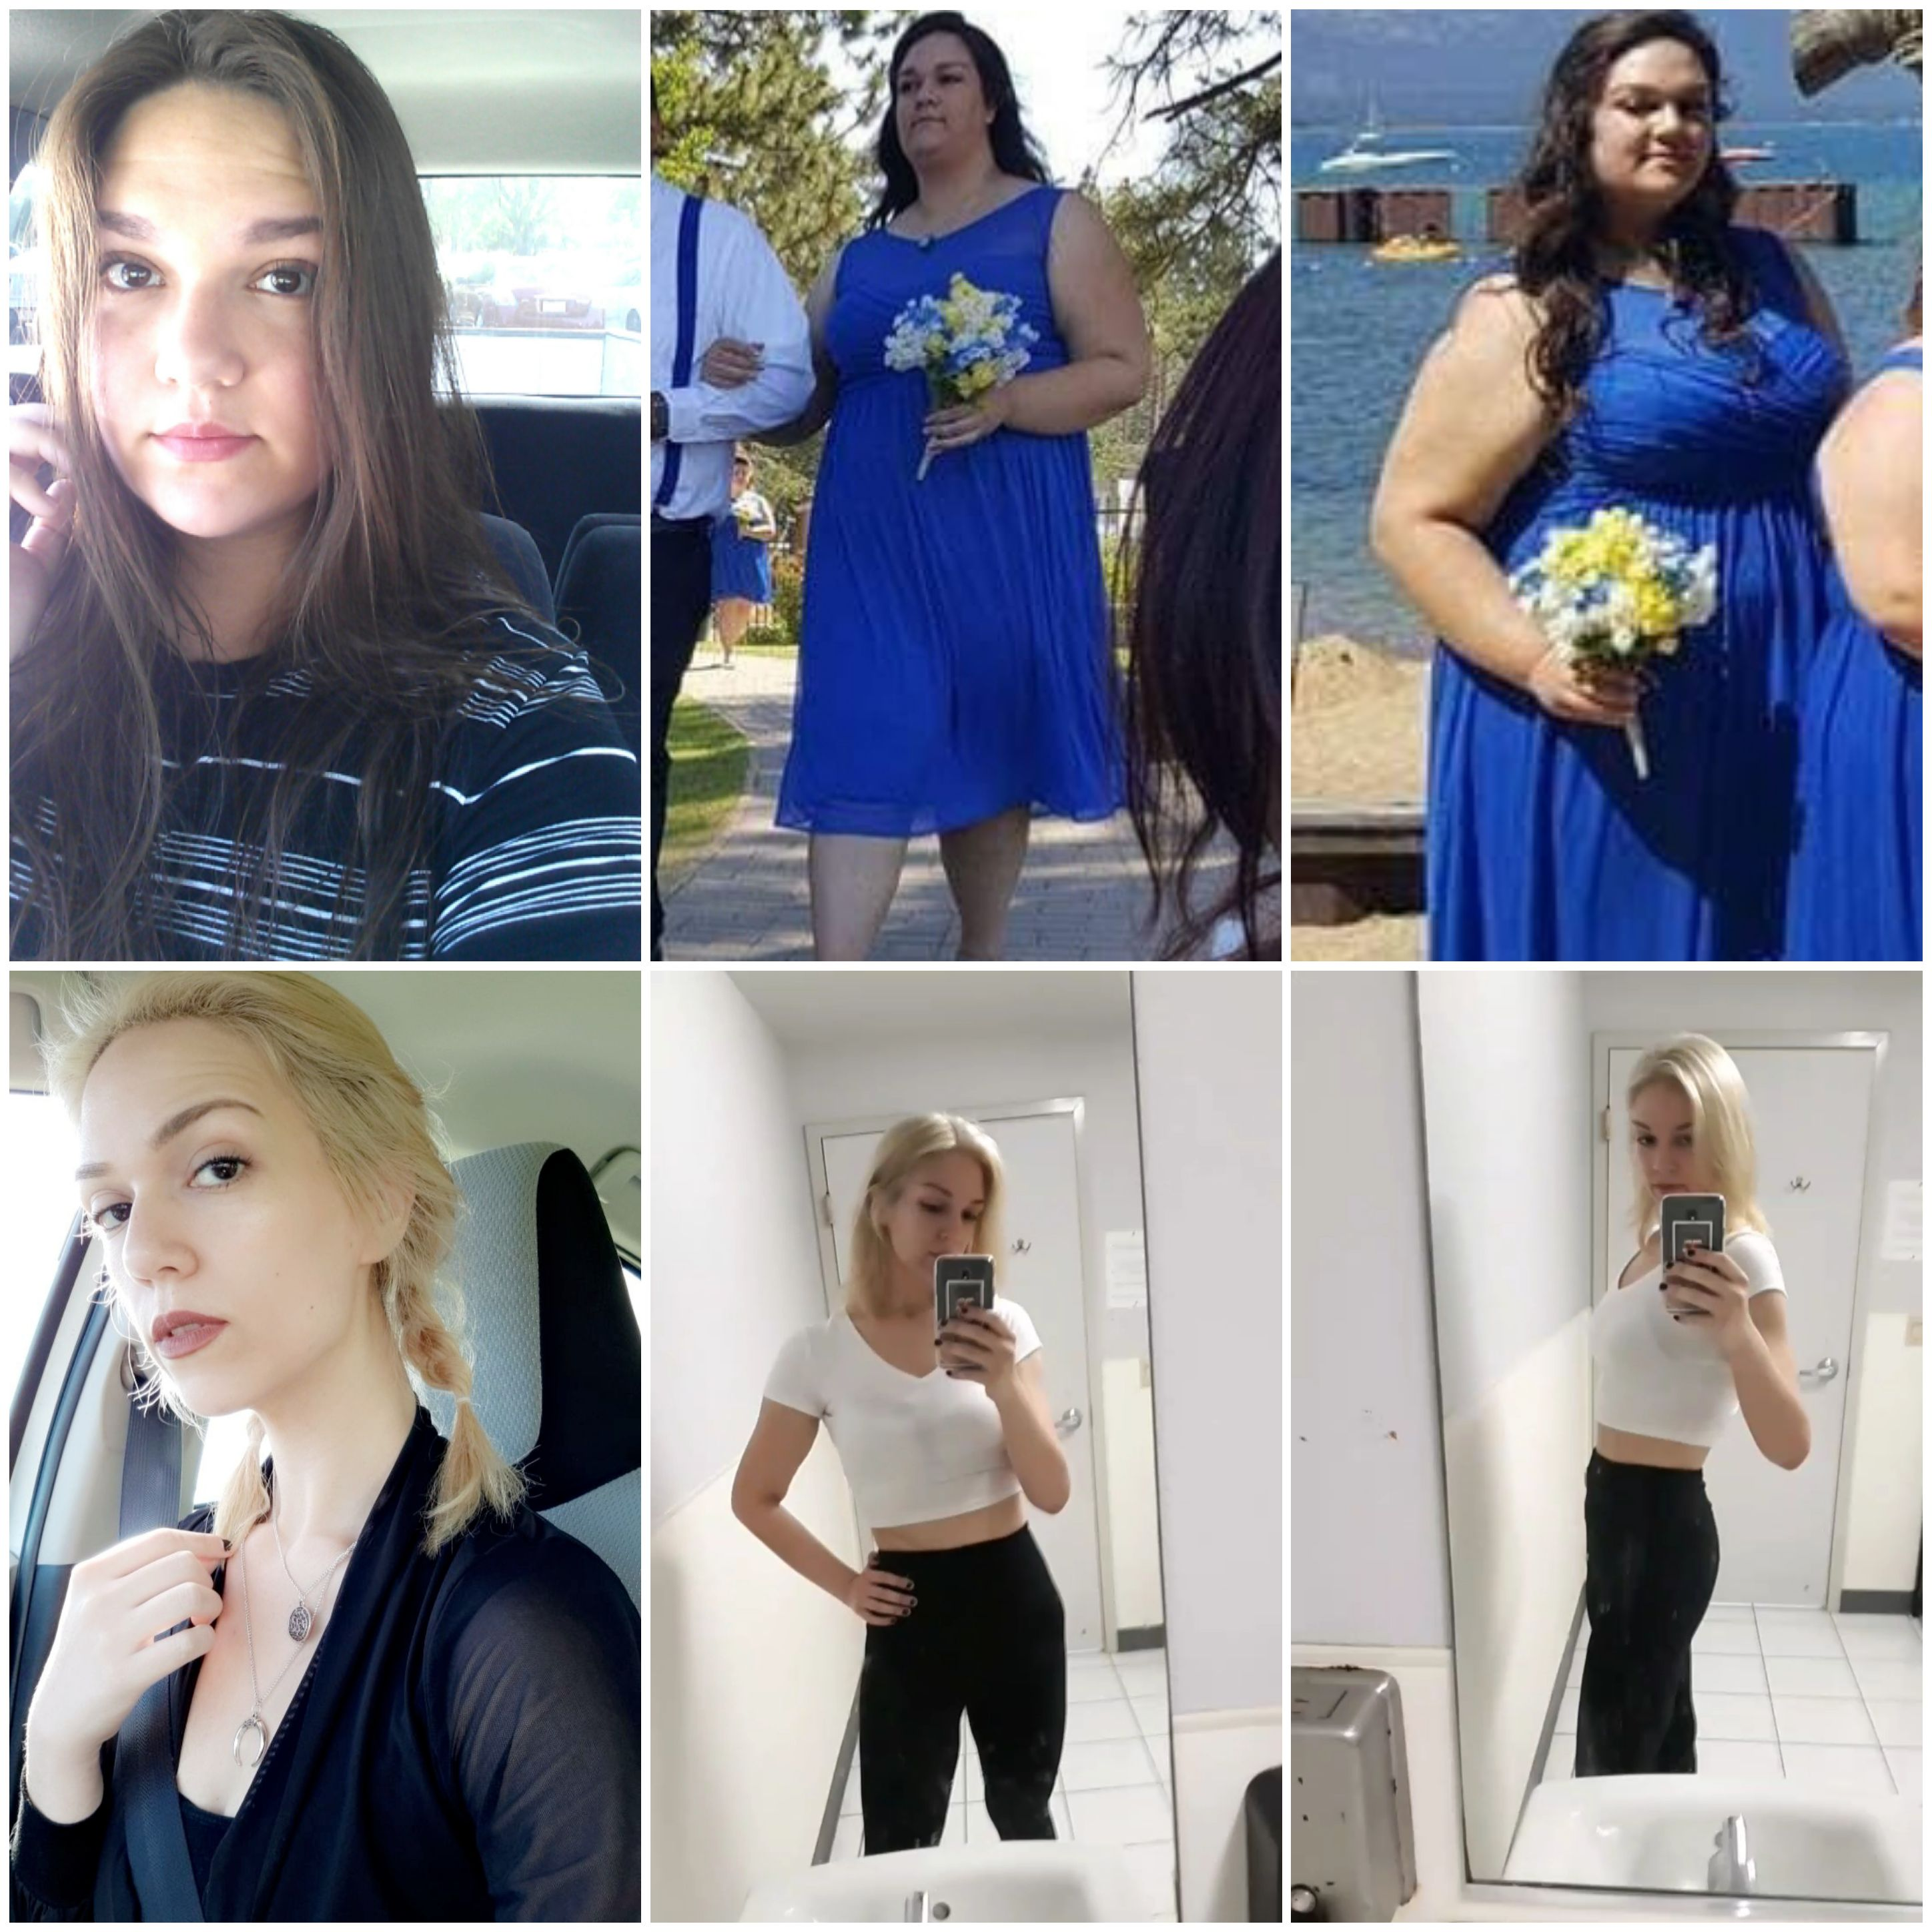 6'1 Female 170 lbs Weight Loss Before and After 326 lbs to 156 lbs